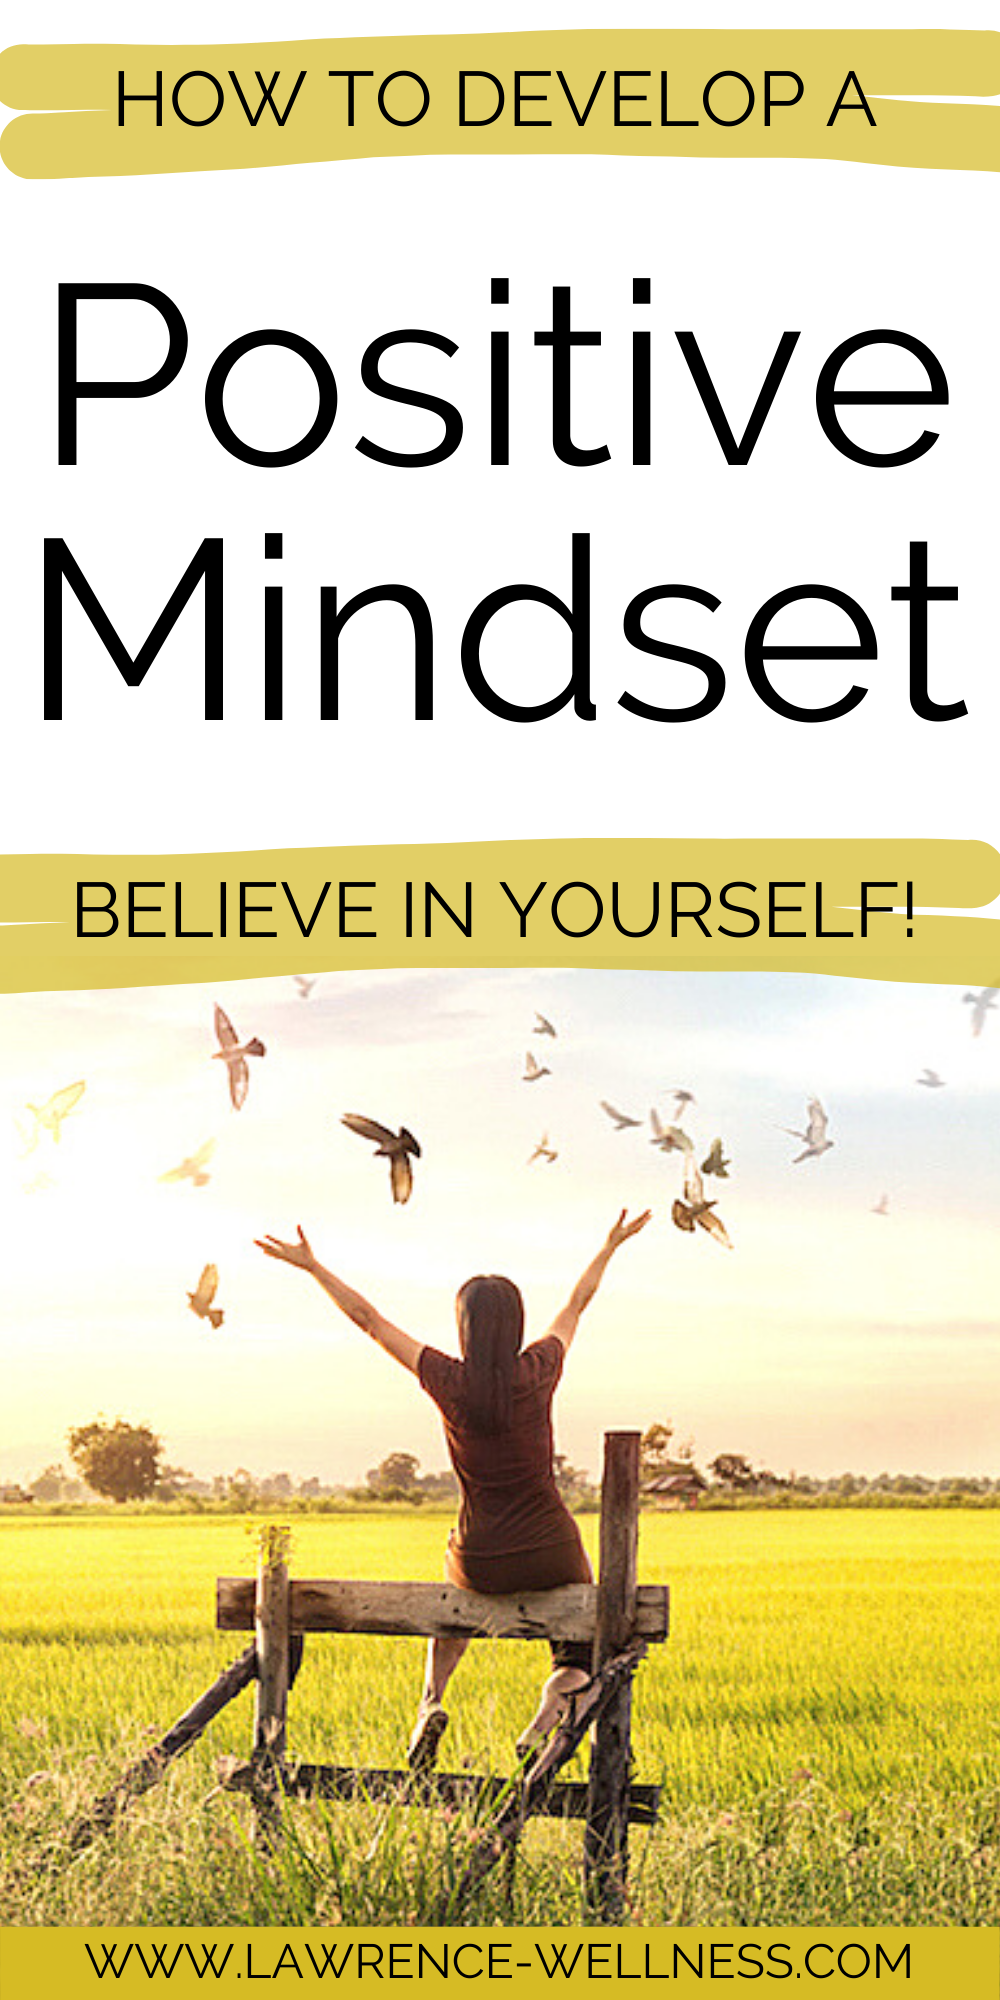 How-to-Develop-a-Positive-Mindset